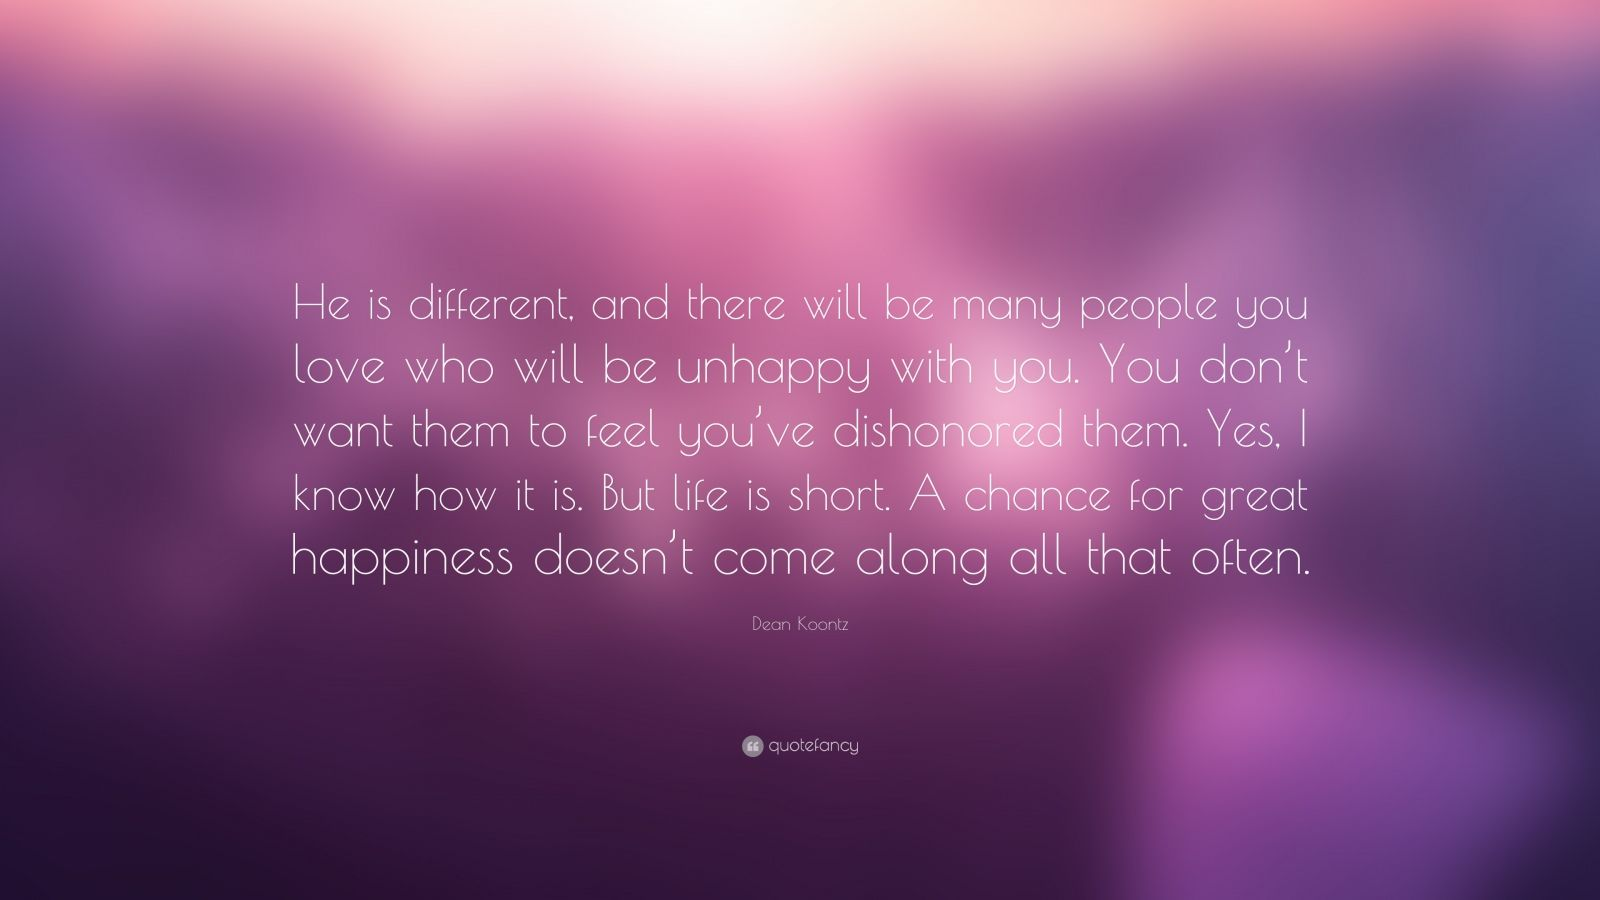 """Dean Koontz Quote: """"He is different, and there will be many people you love who will be unhappy with you. You don't want them to feel you've dishonored them. Yes, I know how it is. But life is short. A chance for great happiness doesn't come along all that often."""""""